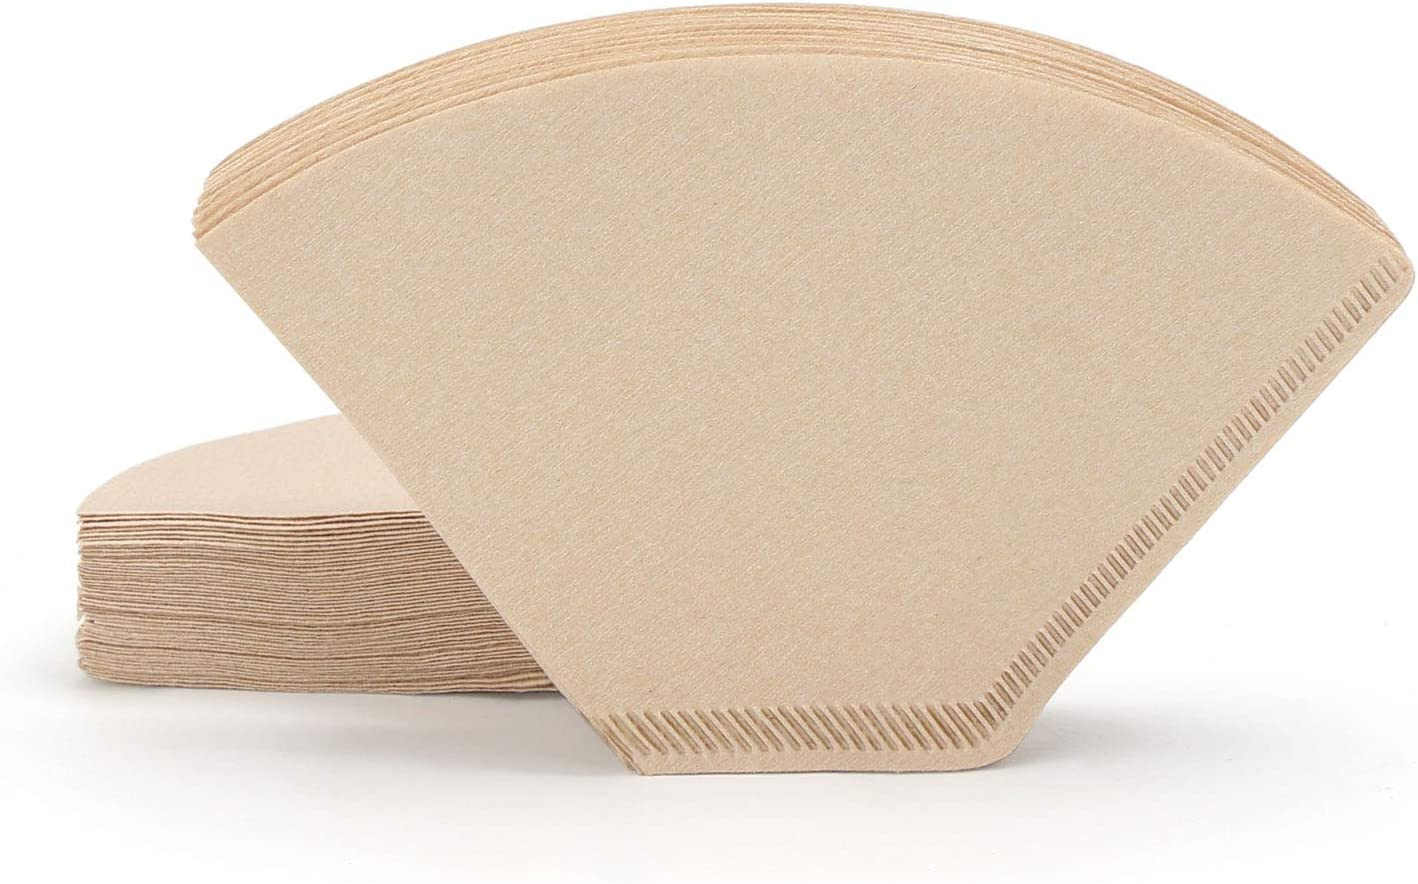 #1 Cone Coffee Filters, Segarty 200 Count Natural Unbleached Brown Paper Coffee Filter